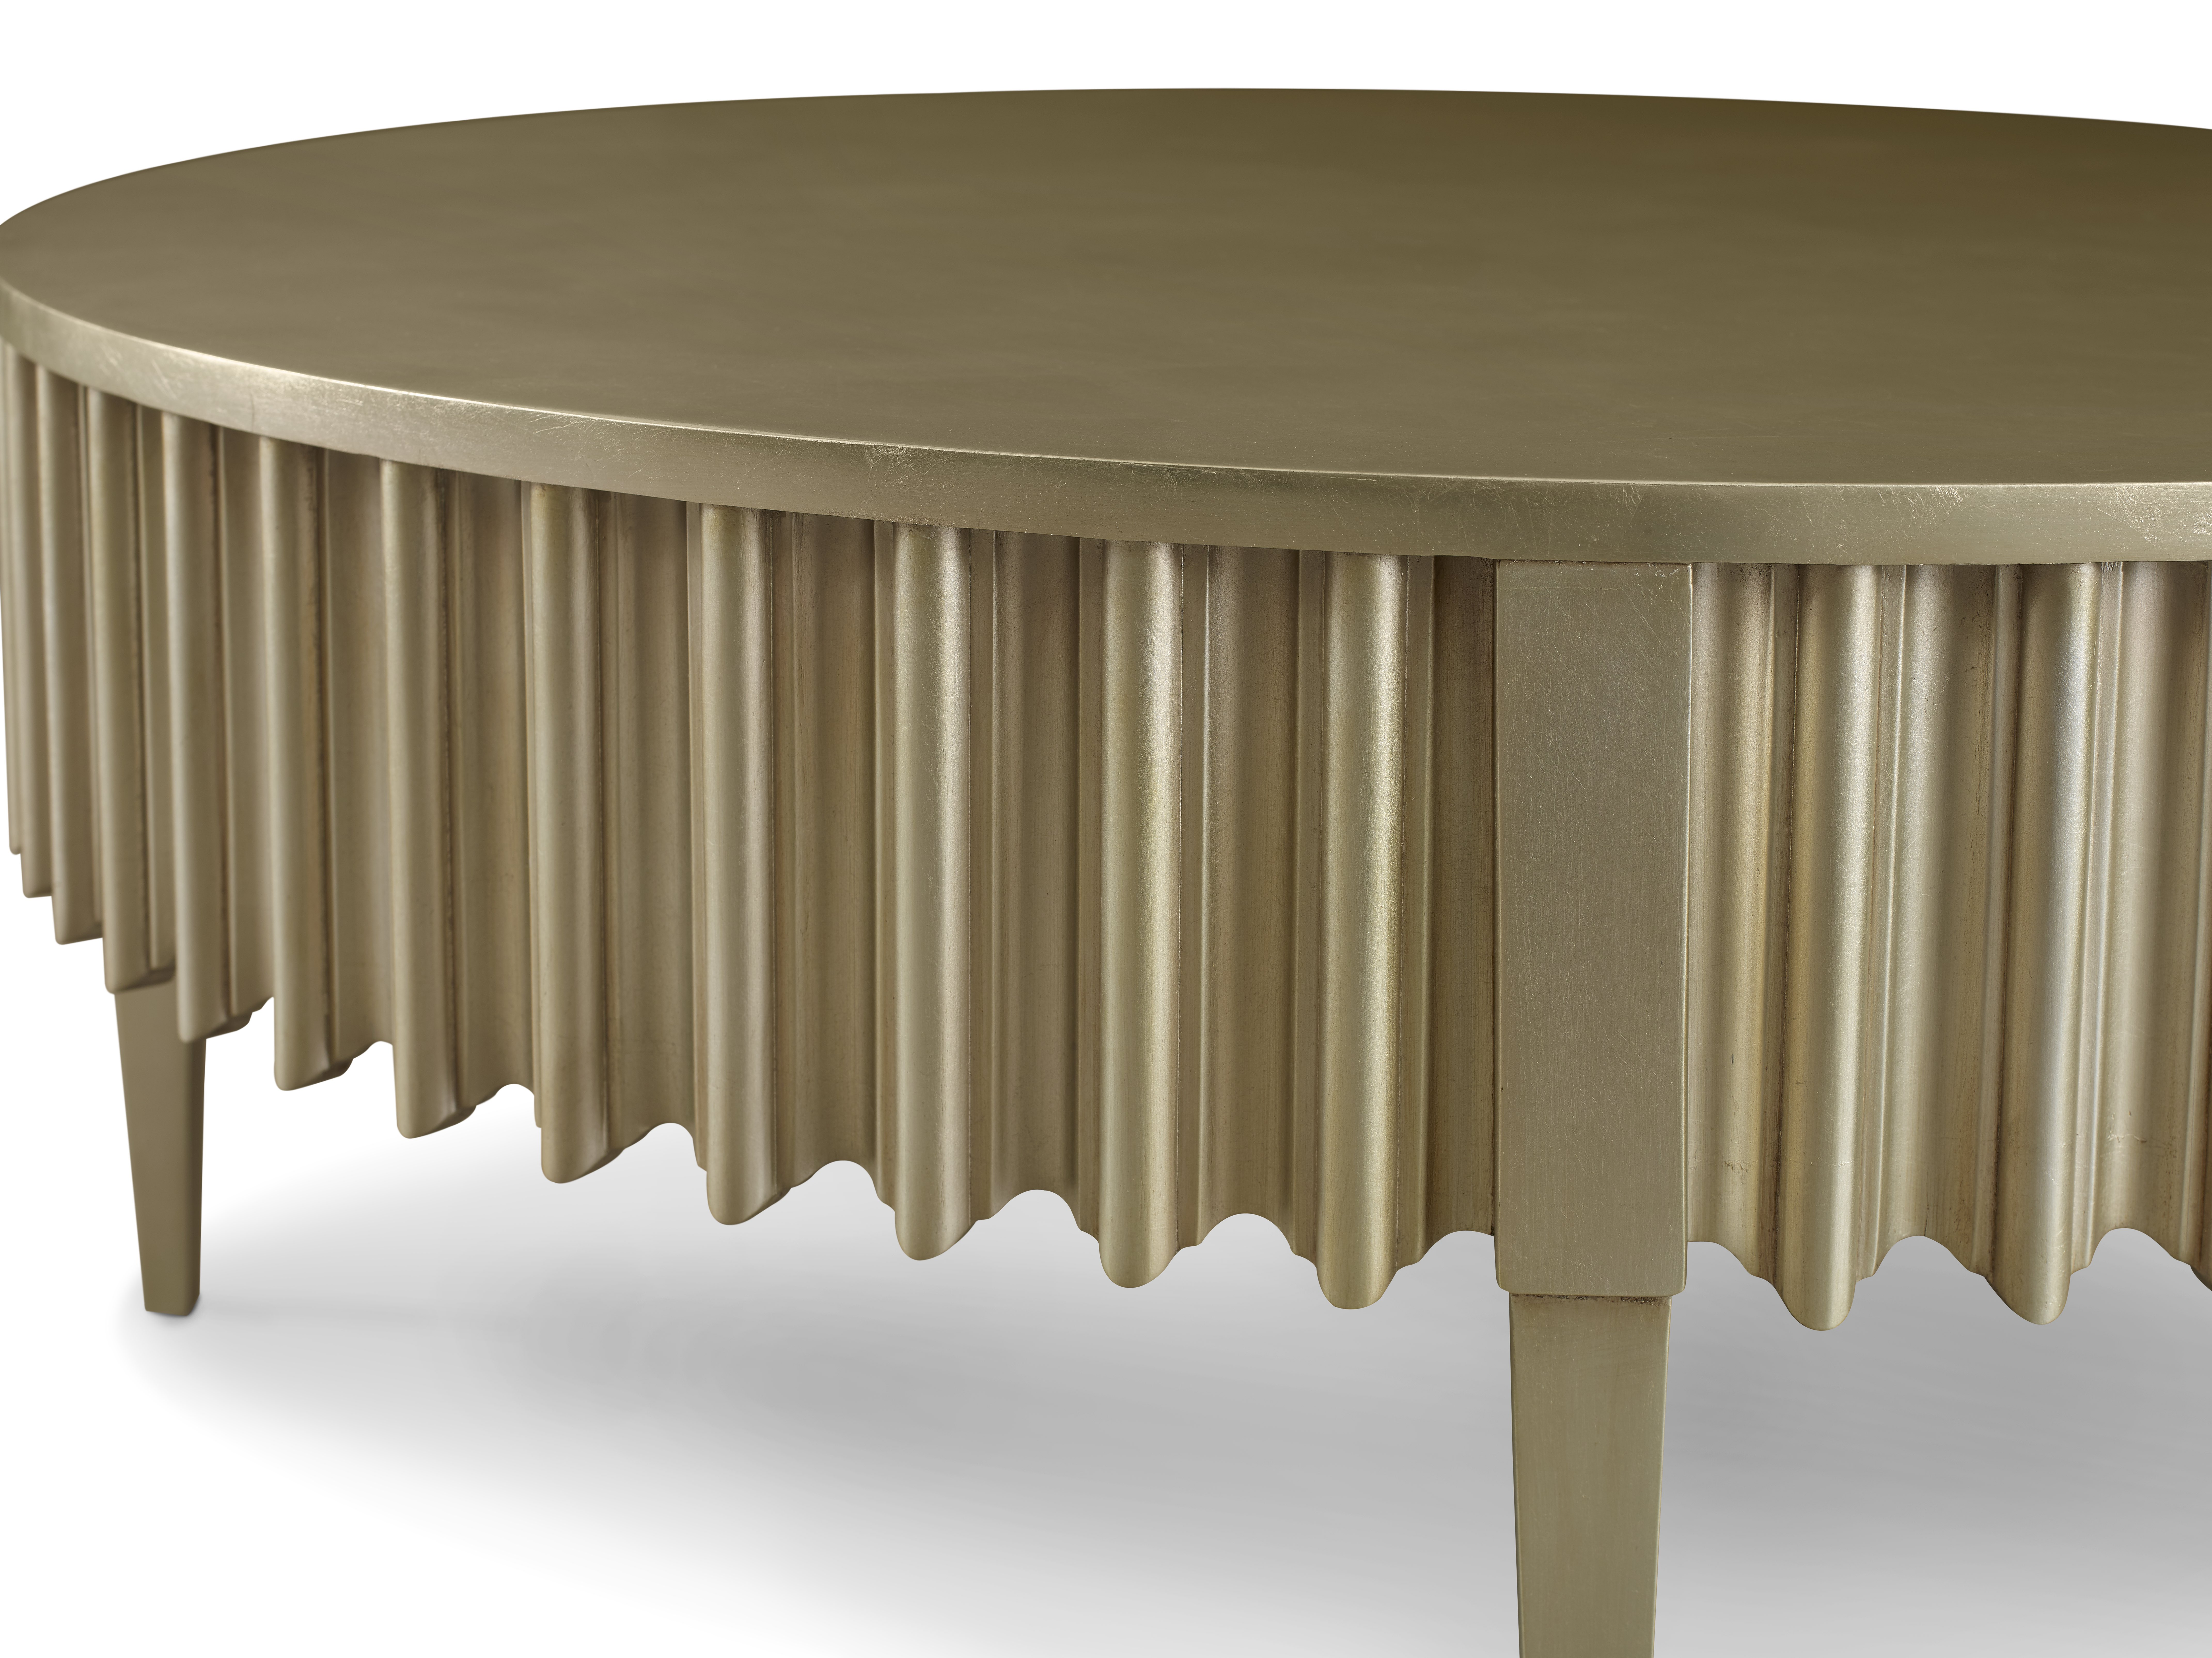 Baker_products_WNWN_reese_cocktail_table_BAA3253_DETAIL-1